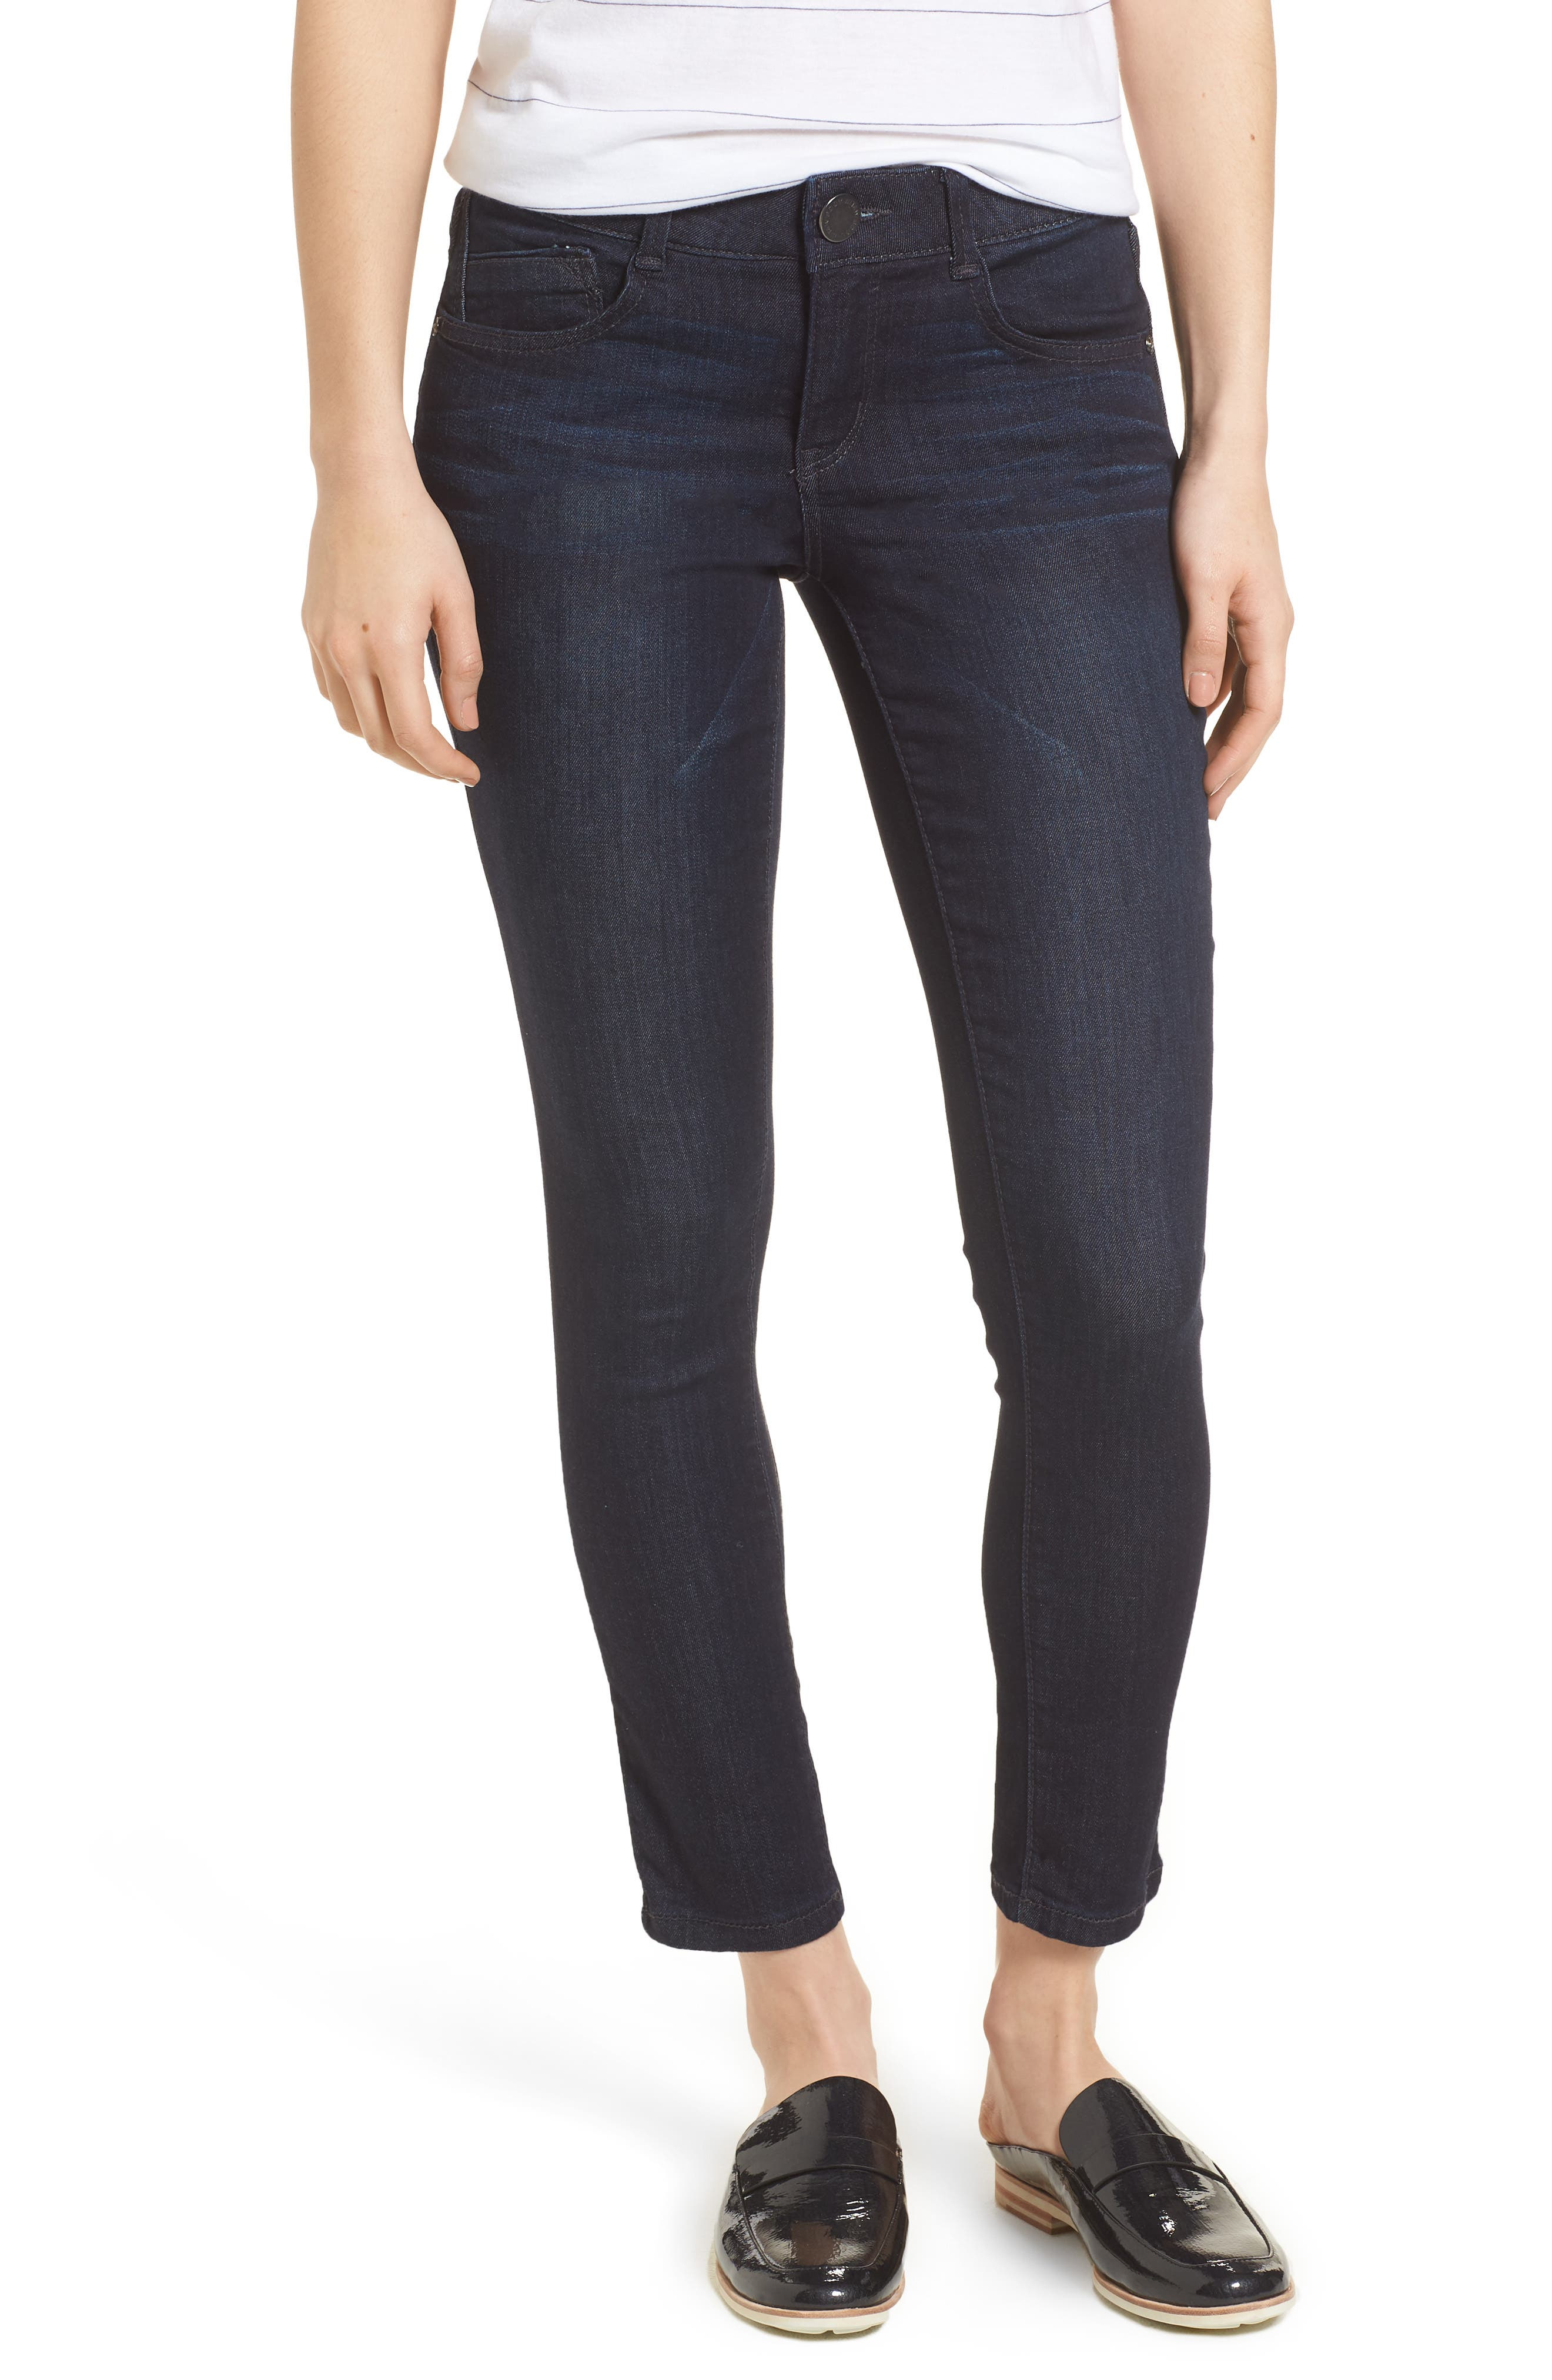 Ab-solution Ankle Skimmer Jeans,                         Main,                         color, In- Indigo